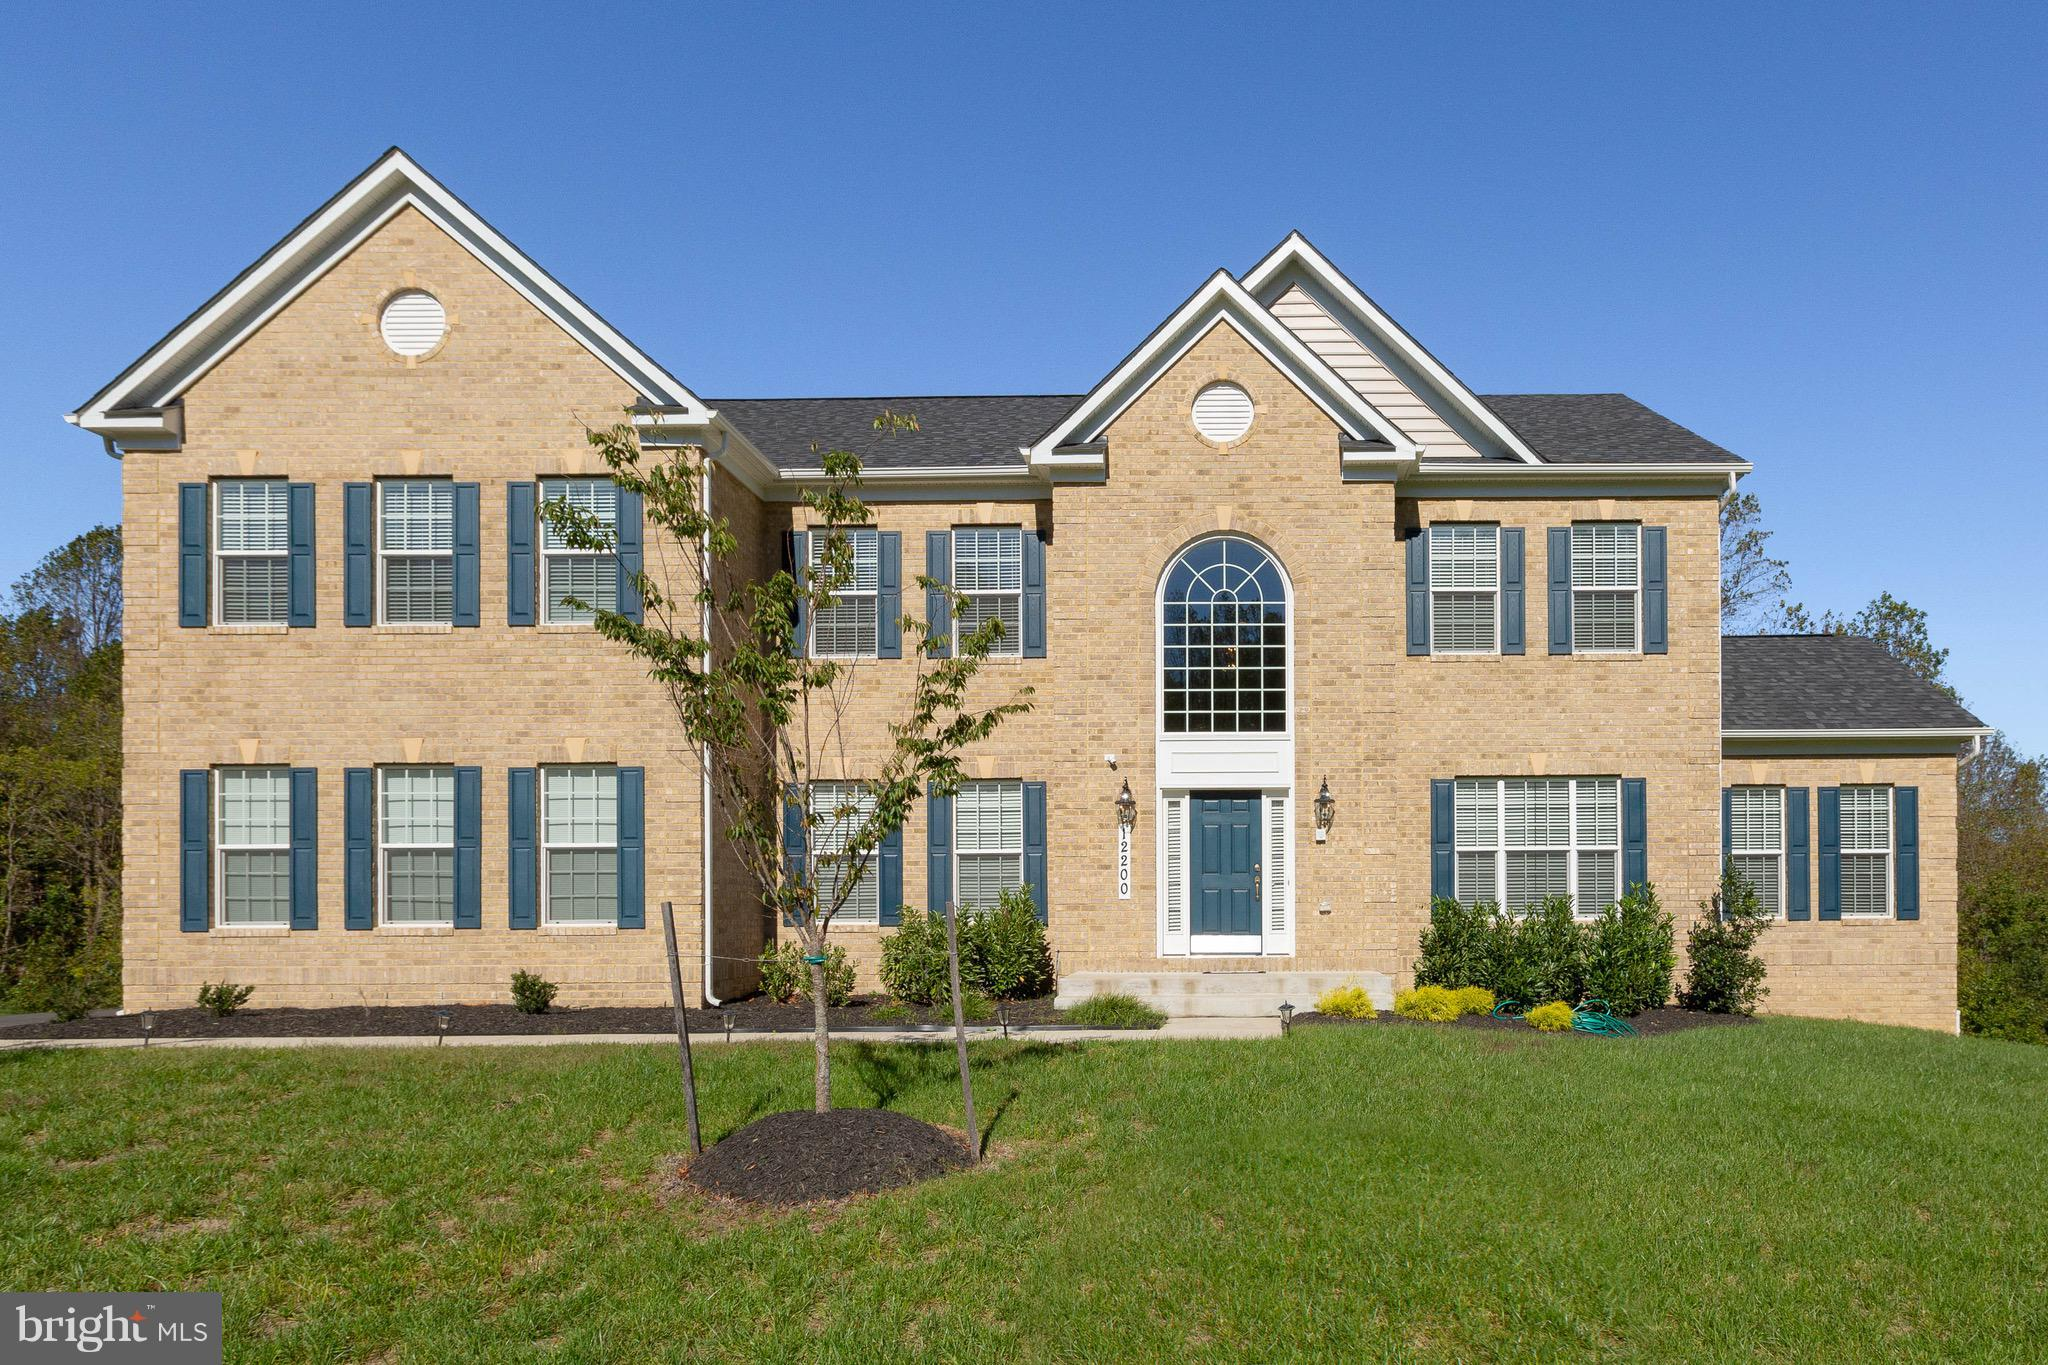 12200 WEATHERVANE LANE, UPPER MARLBORO, MD 20772